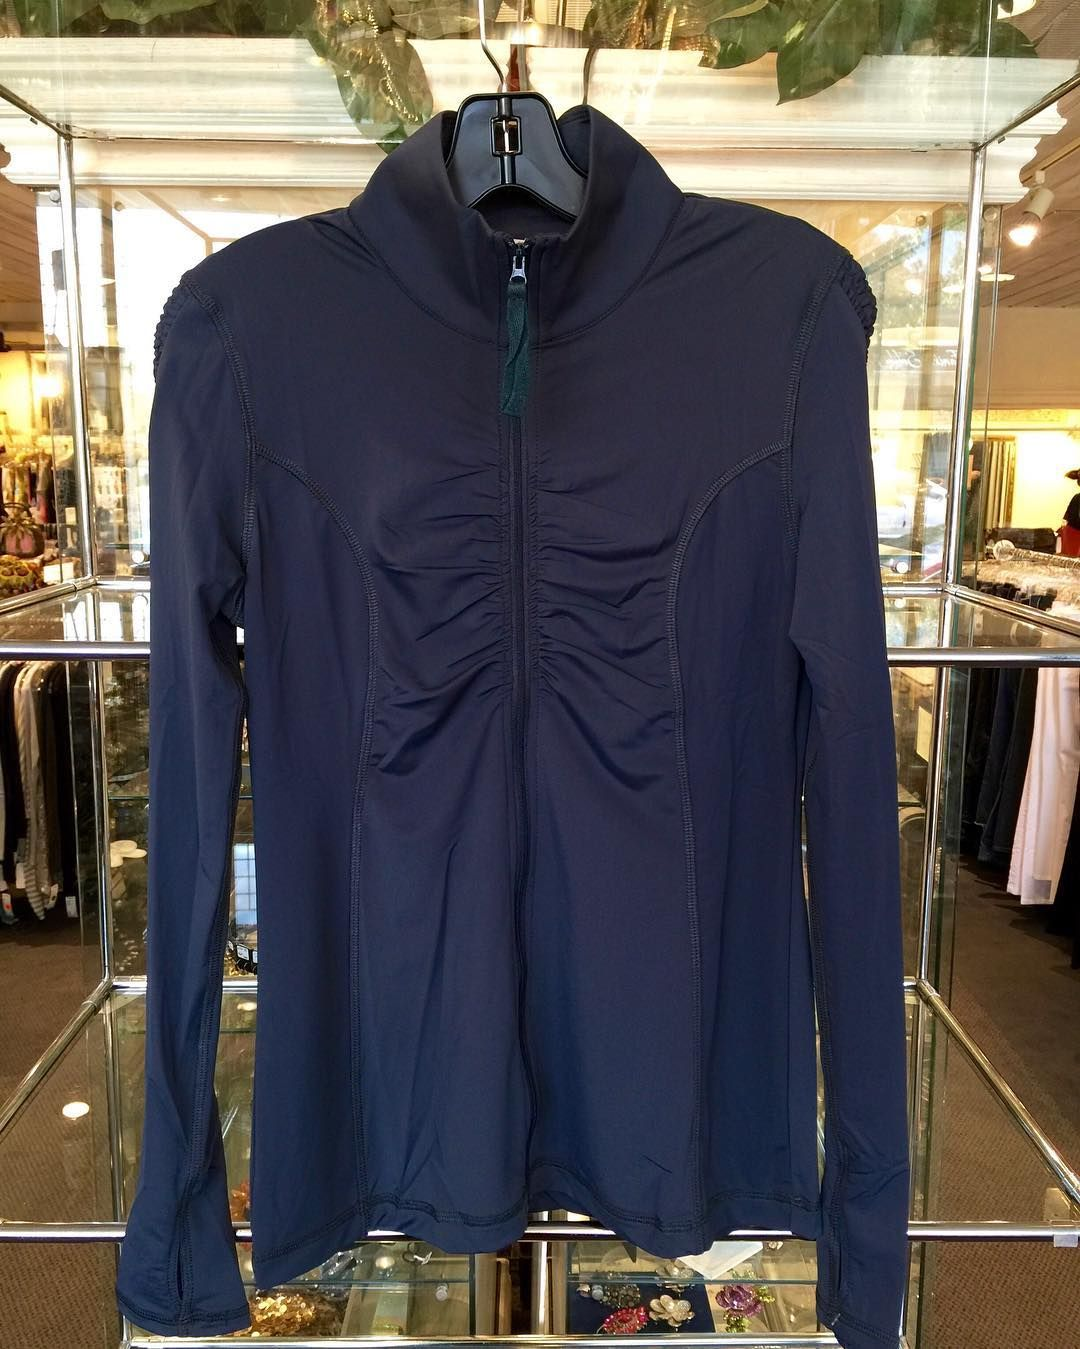 #Mystree #Jacket | Size S/M | $66! #Activewear doesnt have to cost a fortune to be great! #ClosetExchangeNeedham now carries #BRANDNEW activewear.  Stop by 906 Great Plain Ave to check it out!  Call for info (781)449-2500.  #ShopConsignment  #ShopLocal #DesignerDeals #Resale #Luxury #Thrift #Fashionista #Exercise